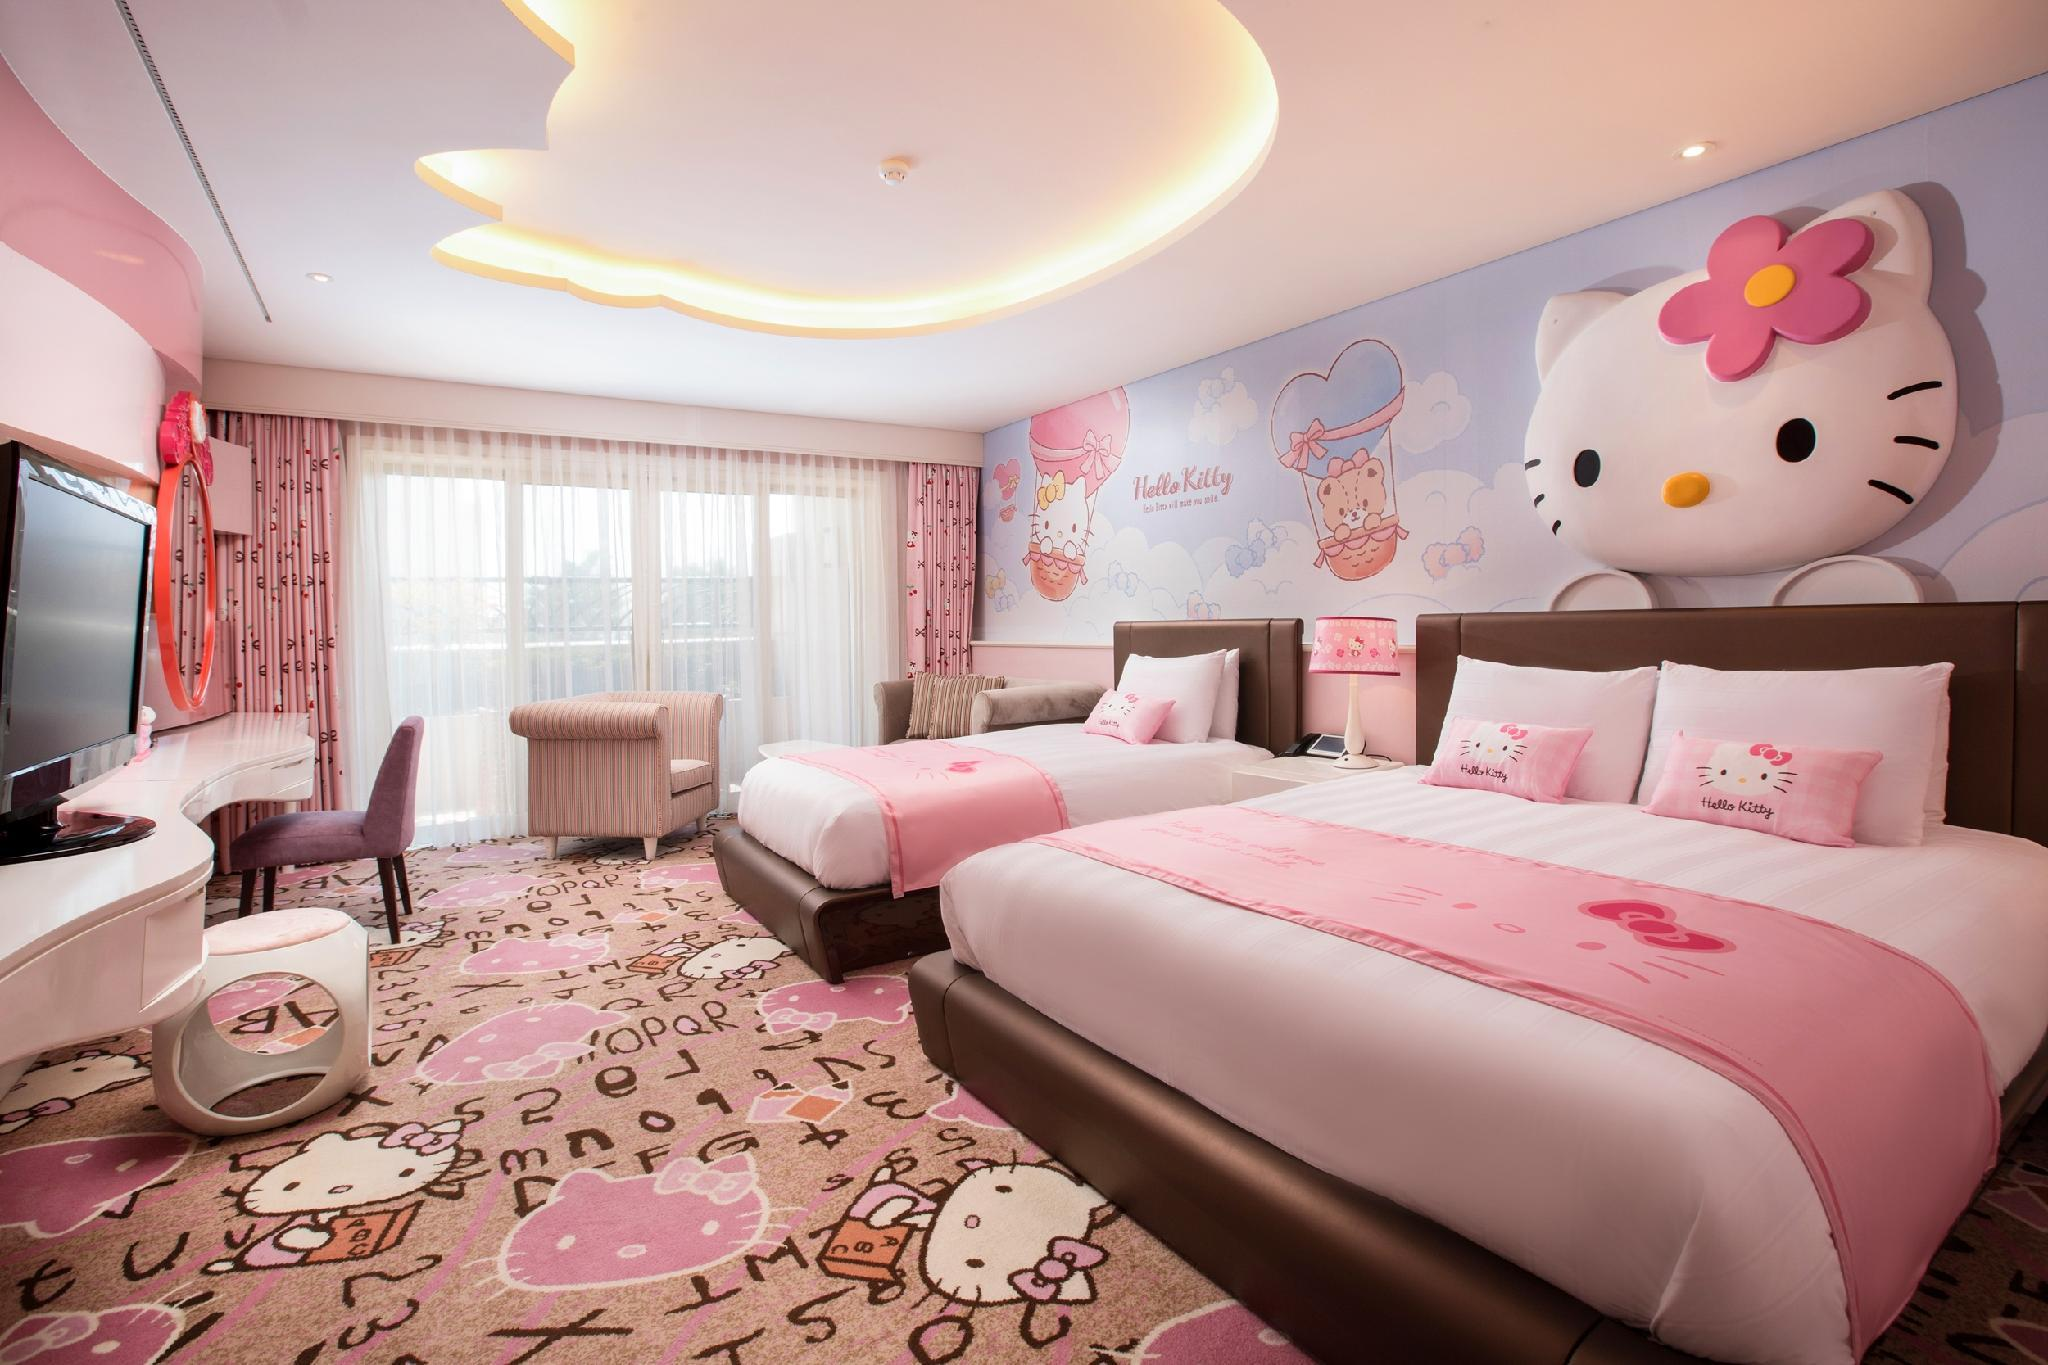 Cameră Hello Kitty - nefumători (Hello Kitty Room - Non-Smoking)